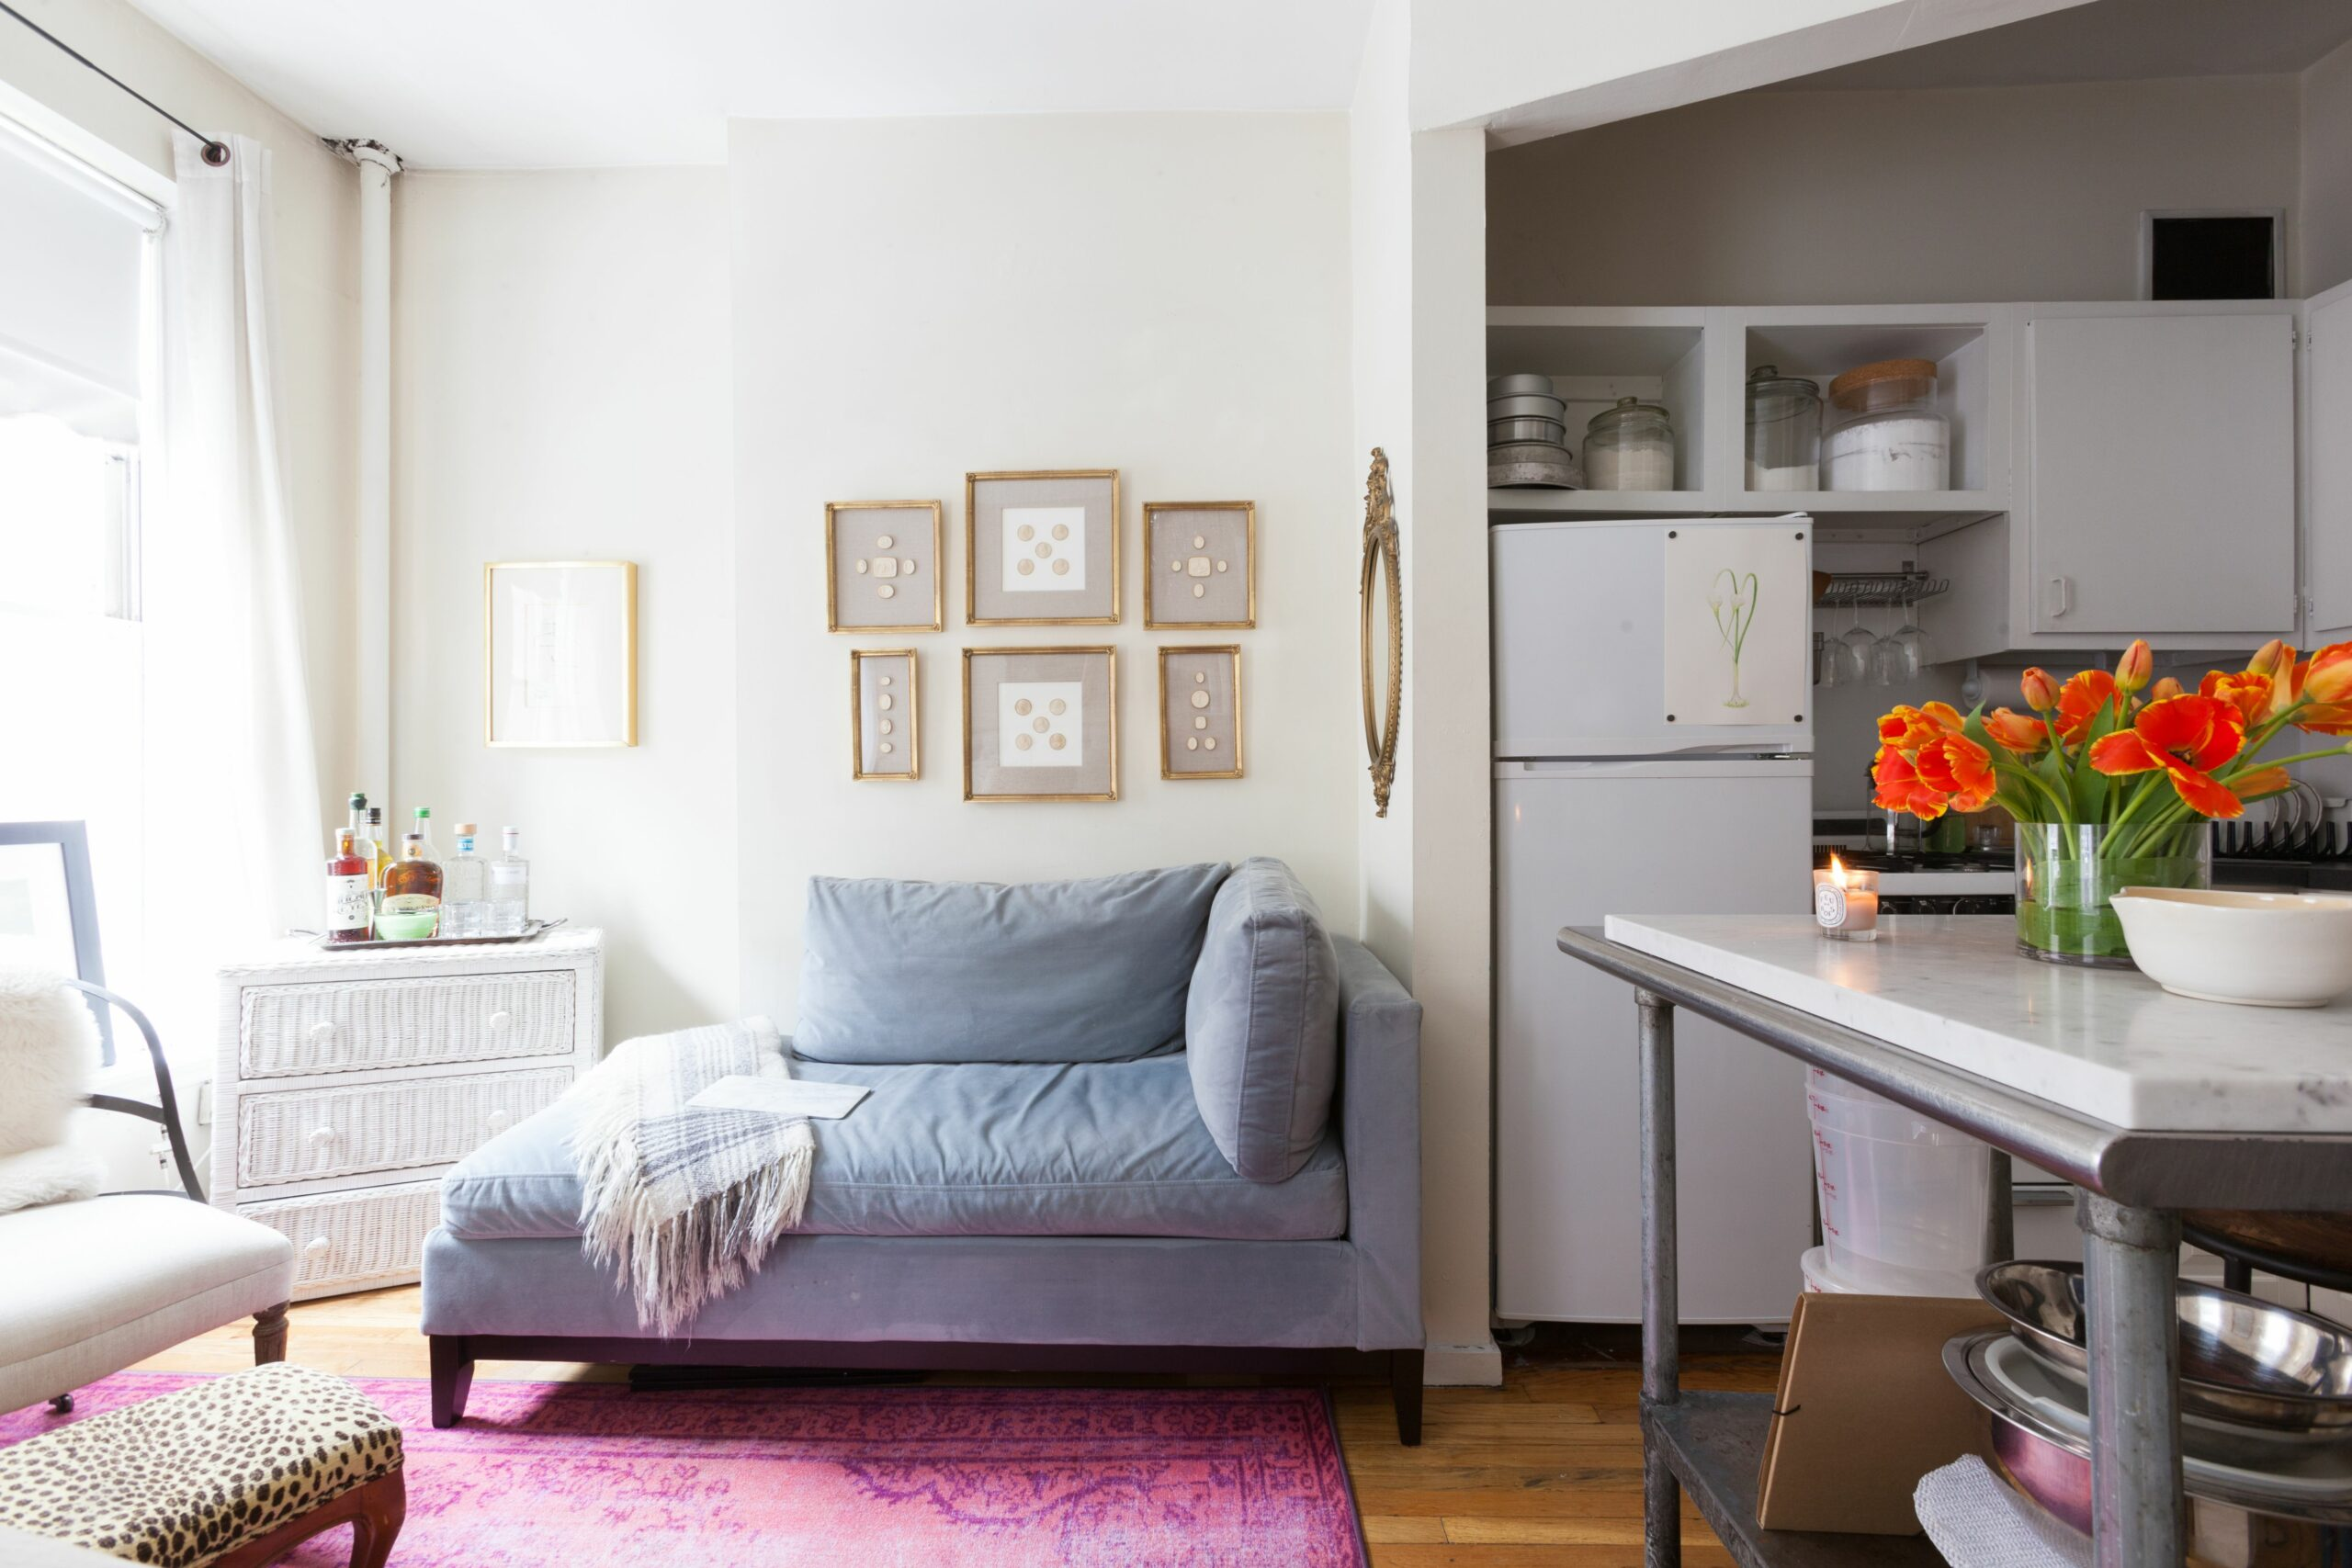 House Tour: Small But Sweet 12-Square-Foot NYC Studio | Apartment ..